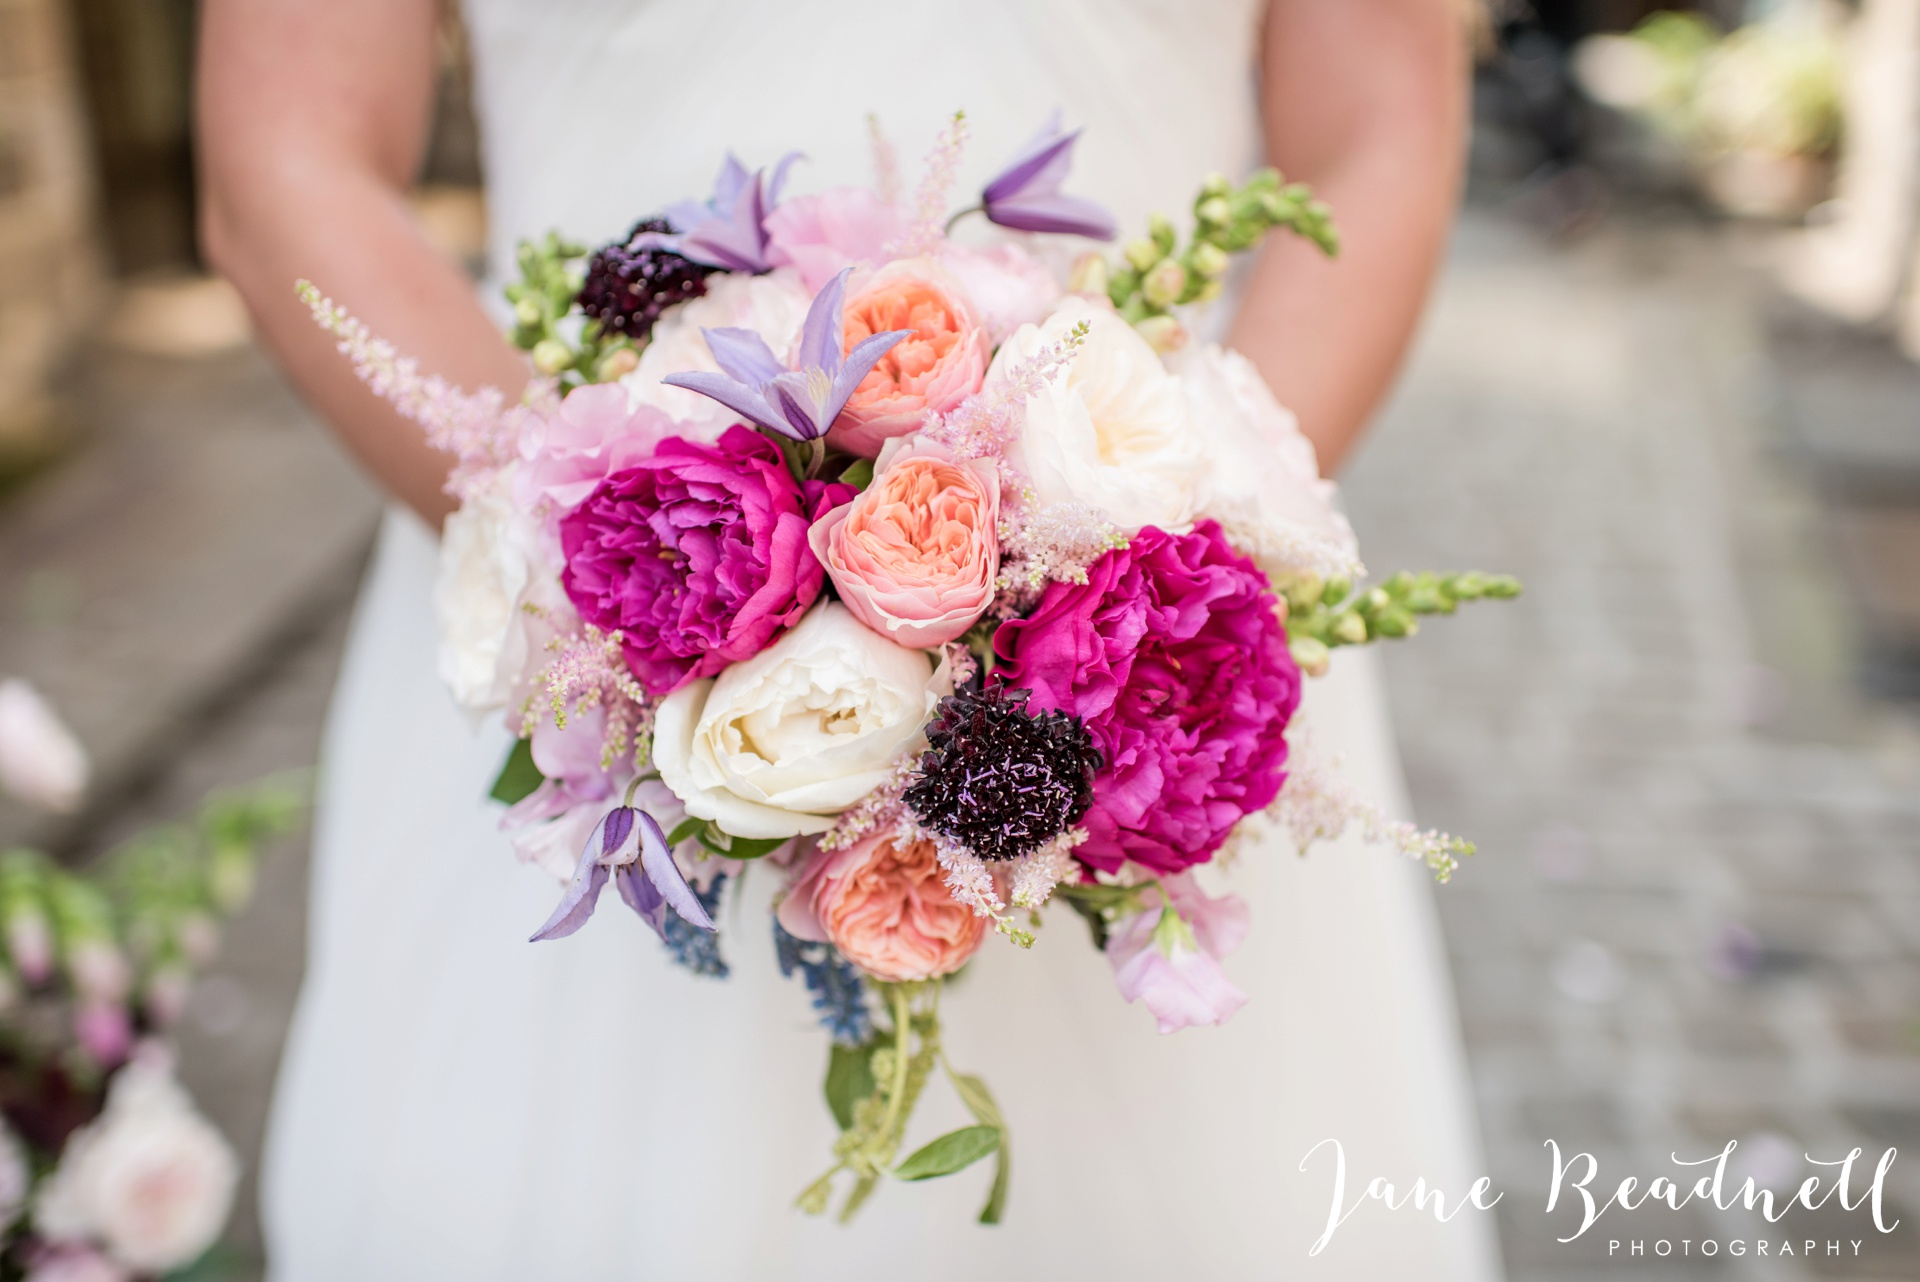 Fine art wedding photography by Jane Beadnell Photography Leafy Couture wedding flowers_0002